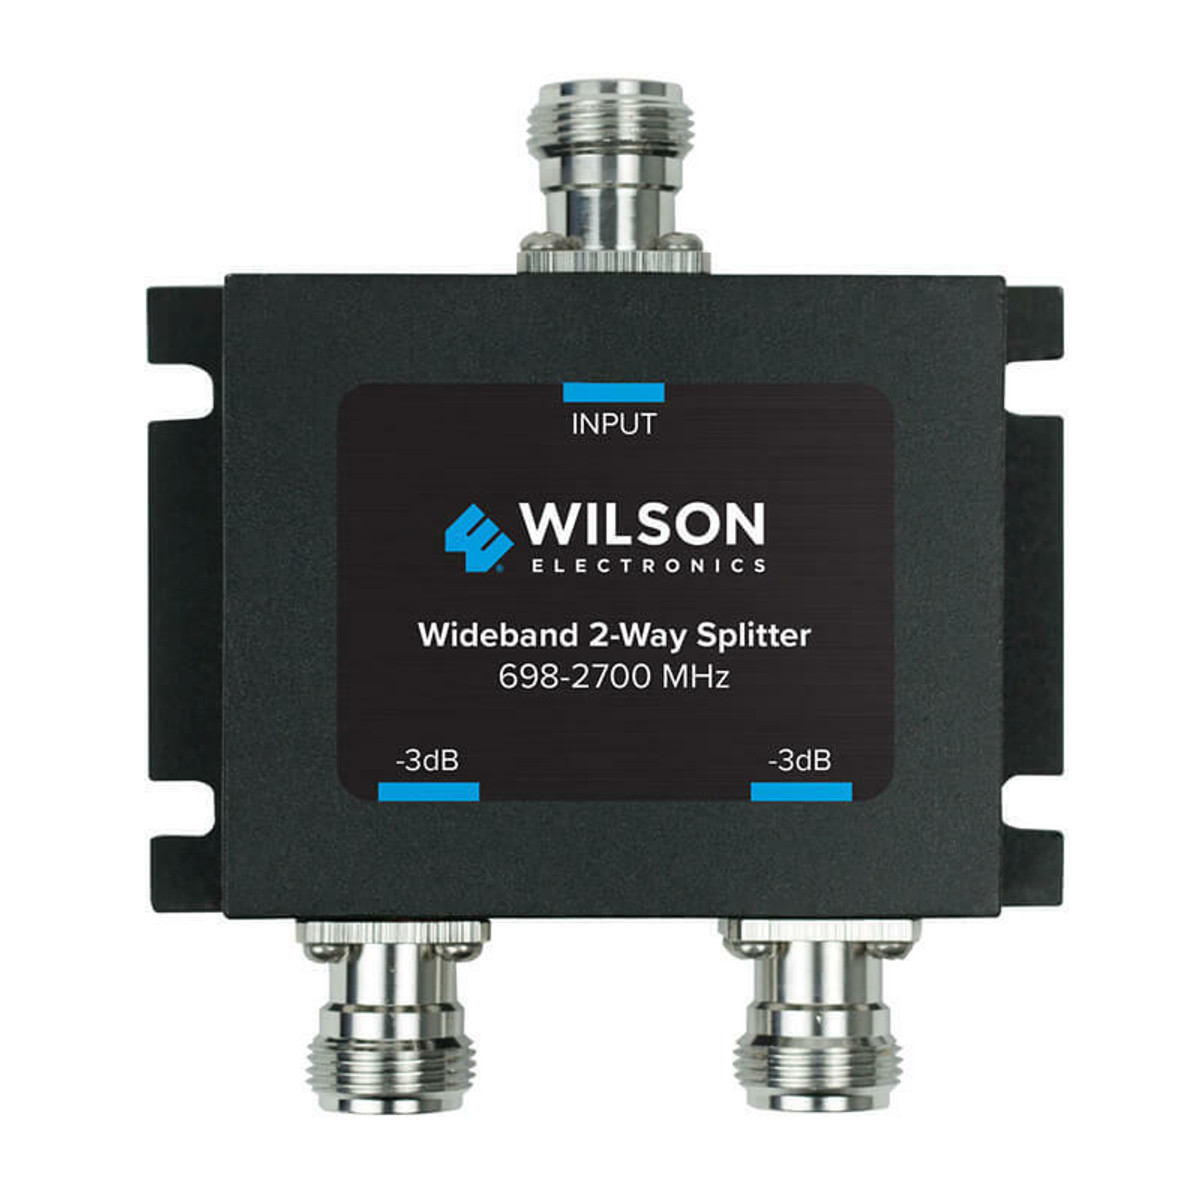 Wilson Electronics Wilson Electronics -3db 2-way Splitter for 698-2700 Mhz 50ohm or 859957